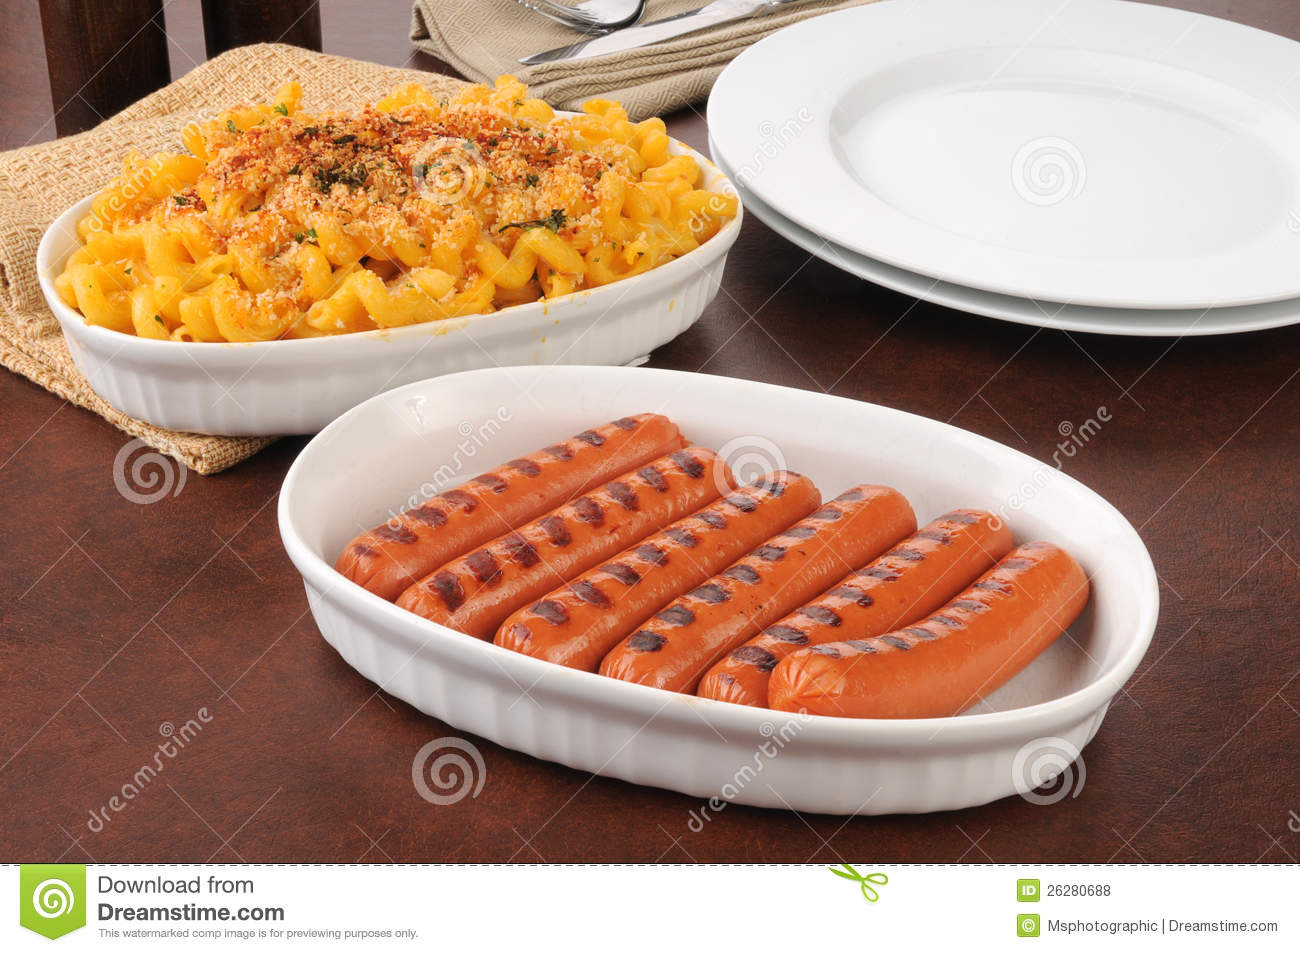 Hot Dogs And Macaroni Cheese